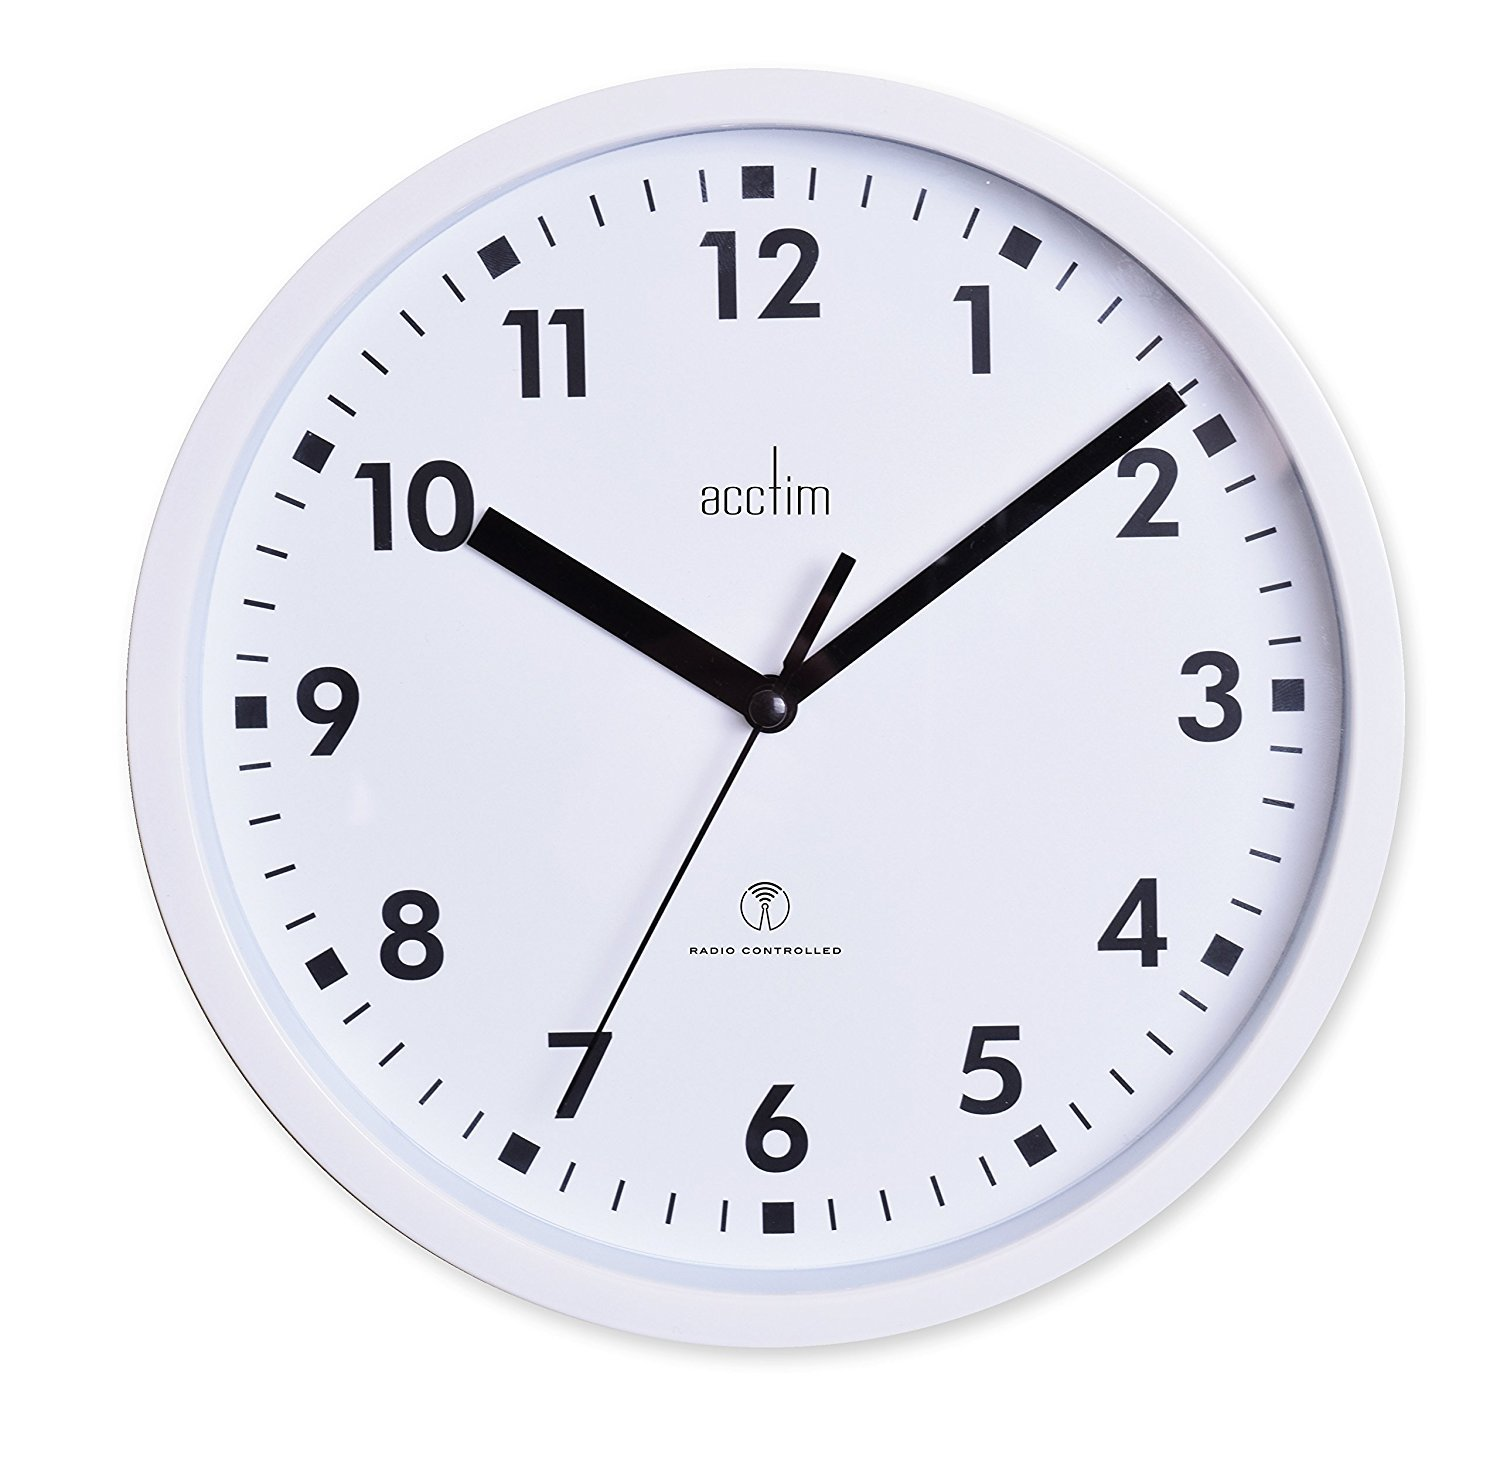 Acctim 74662 Nardo 20cm Radio Controlled White Wall Clock UKASNHKTN8454